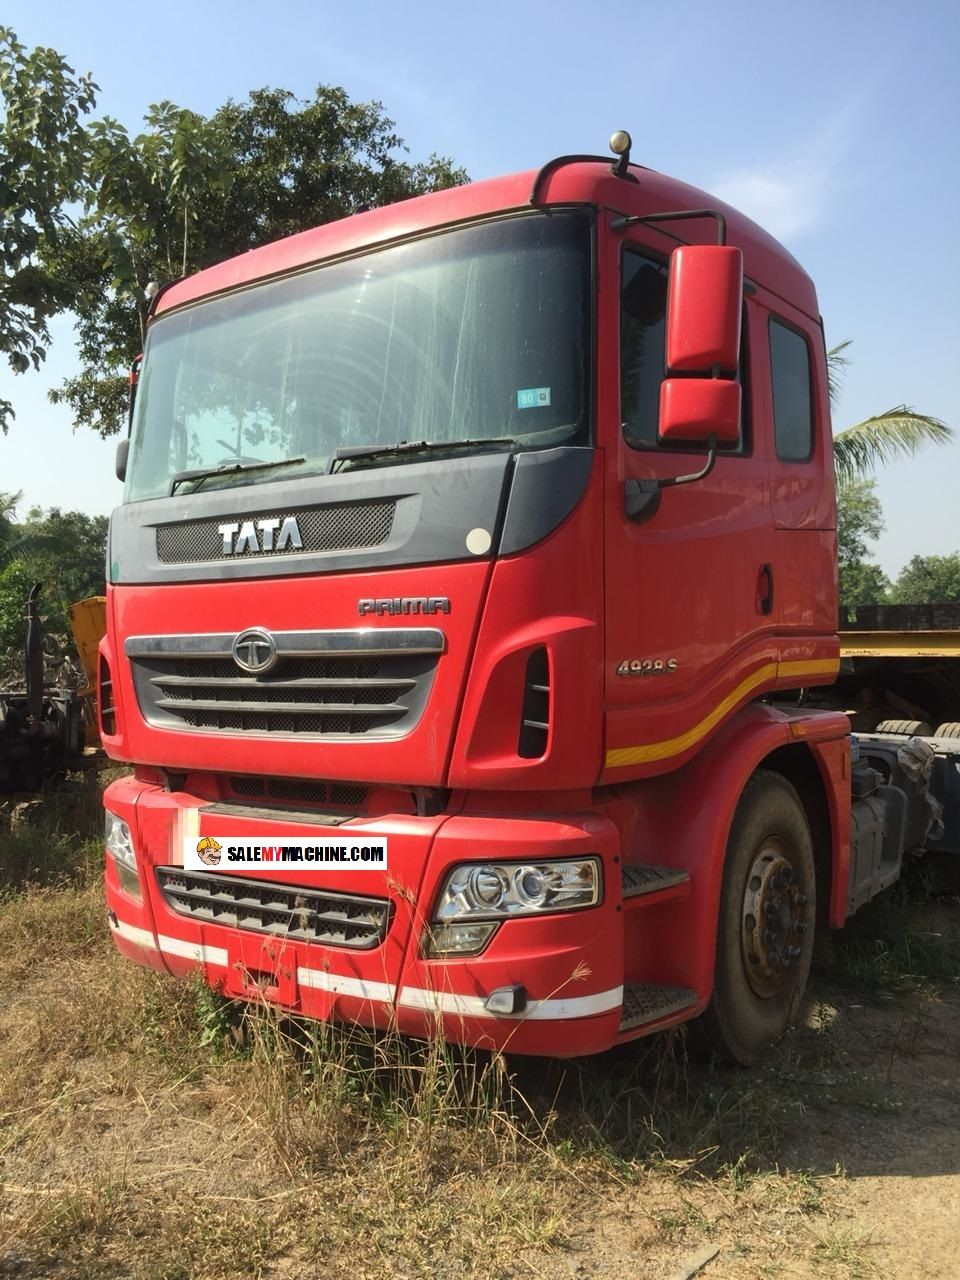 Find used second hand tata prima 4928s horse with tip and